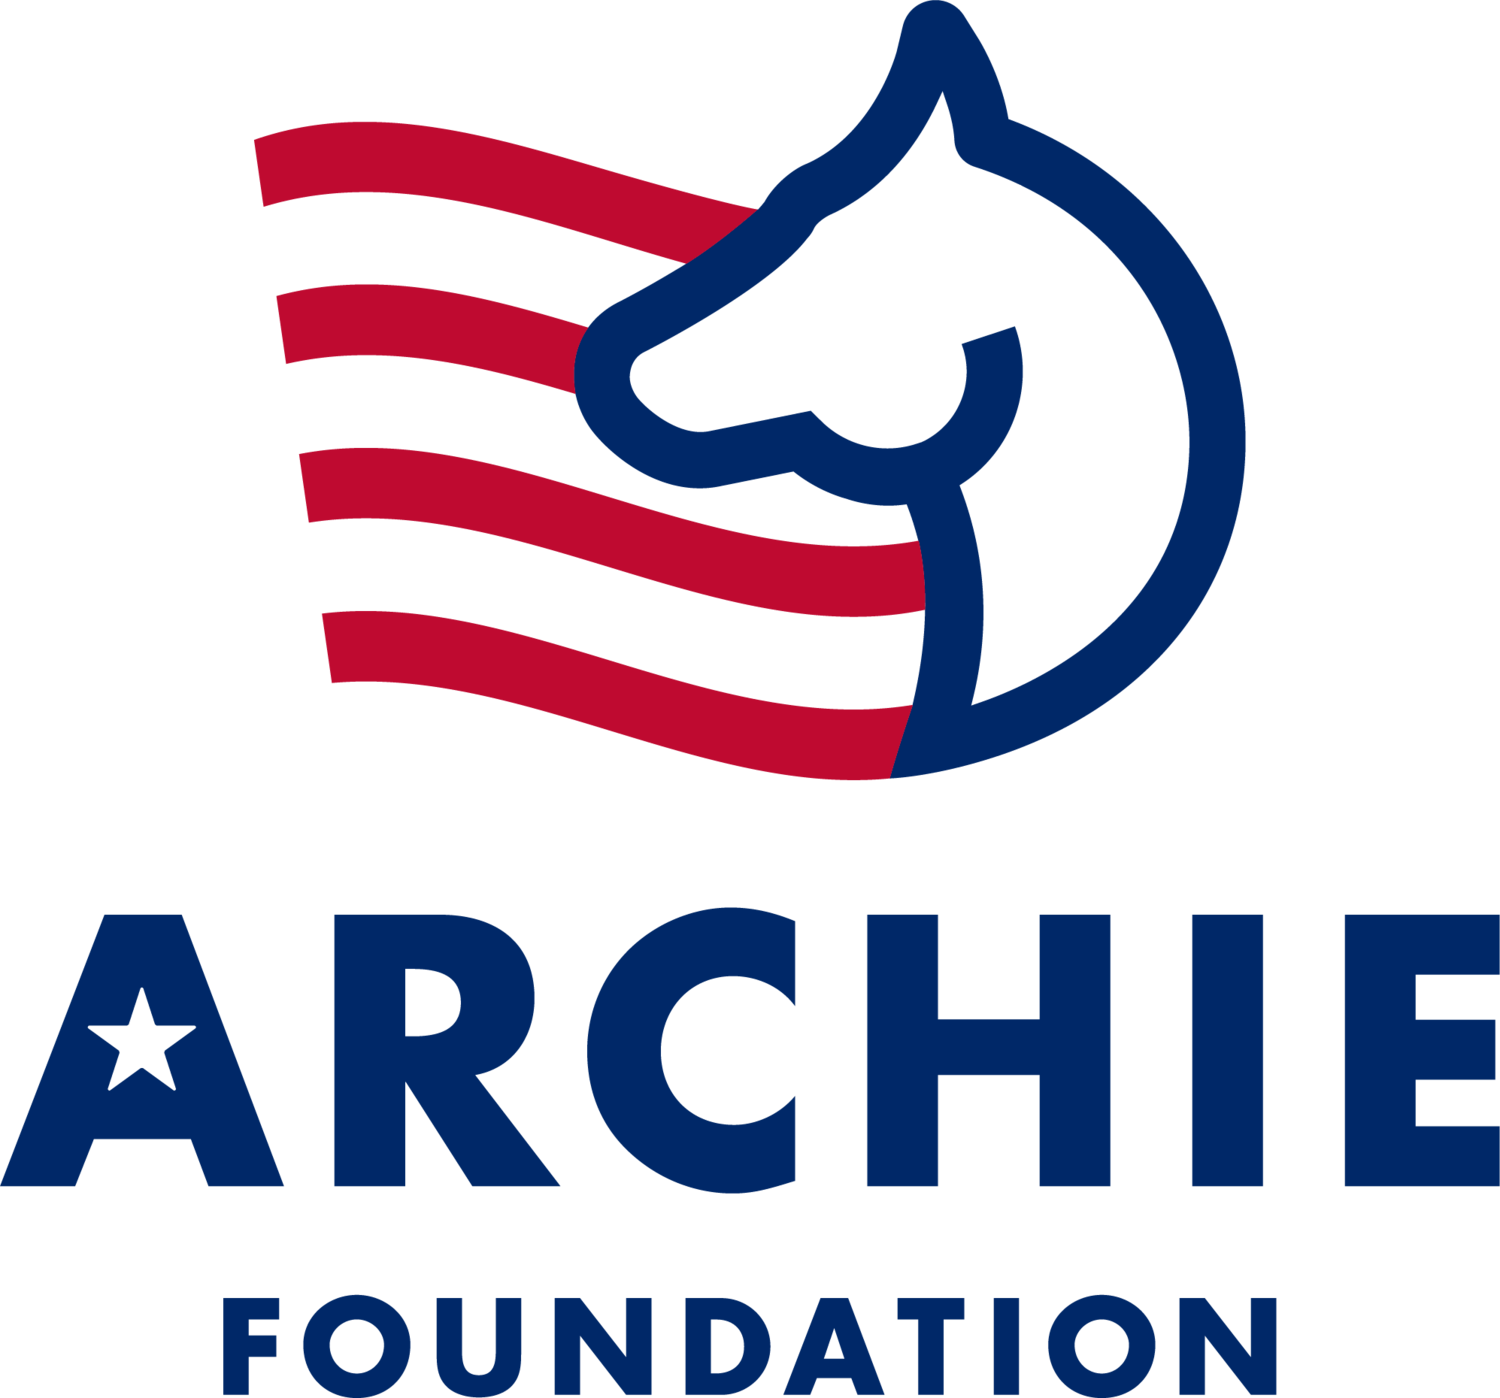 Archie Foundation